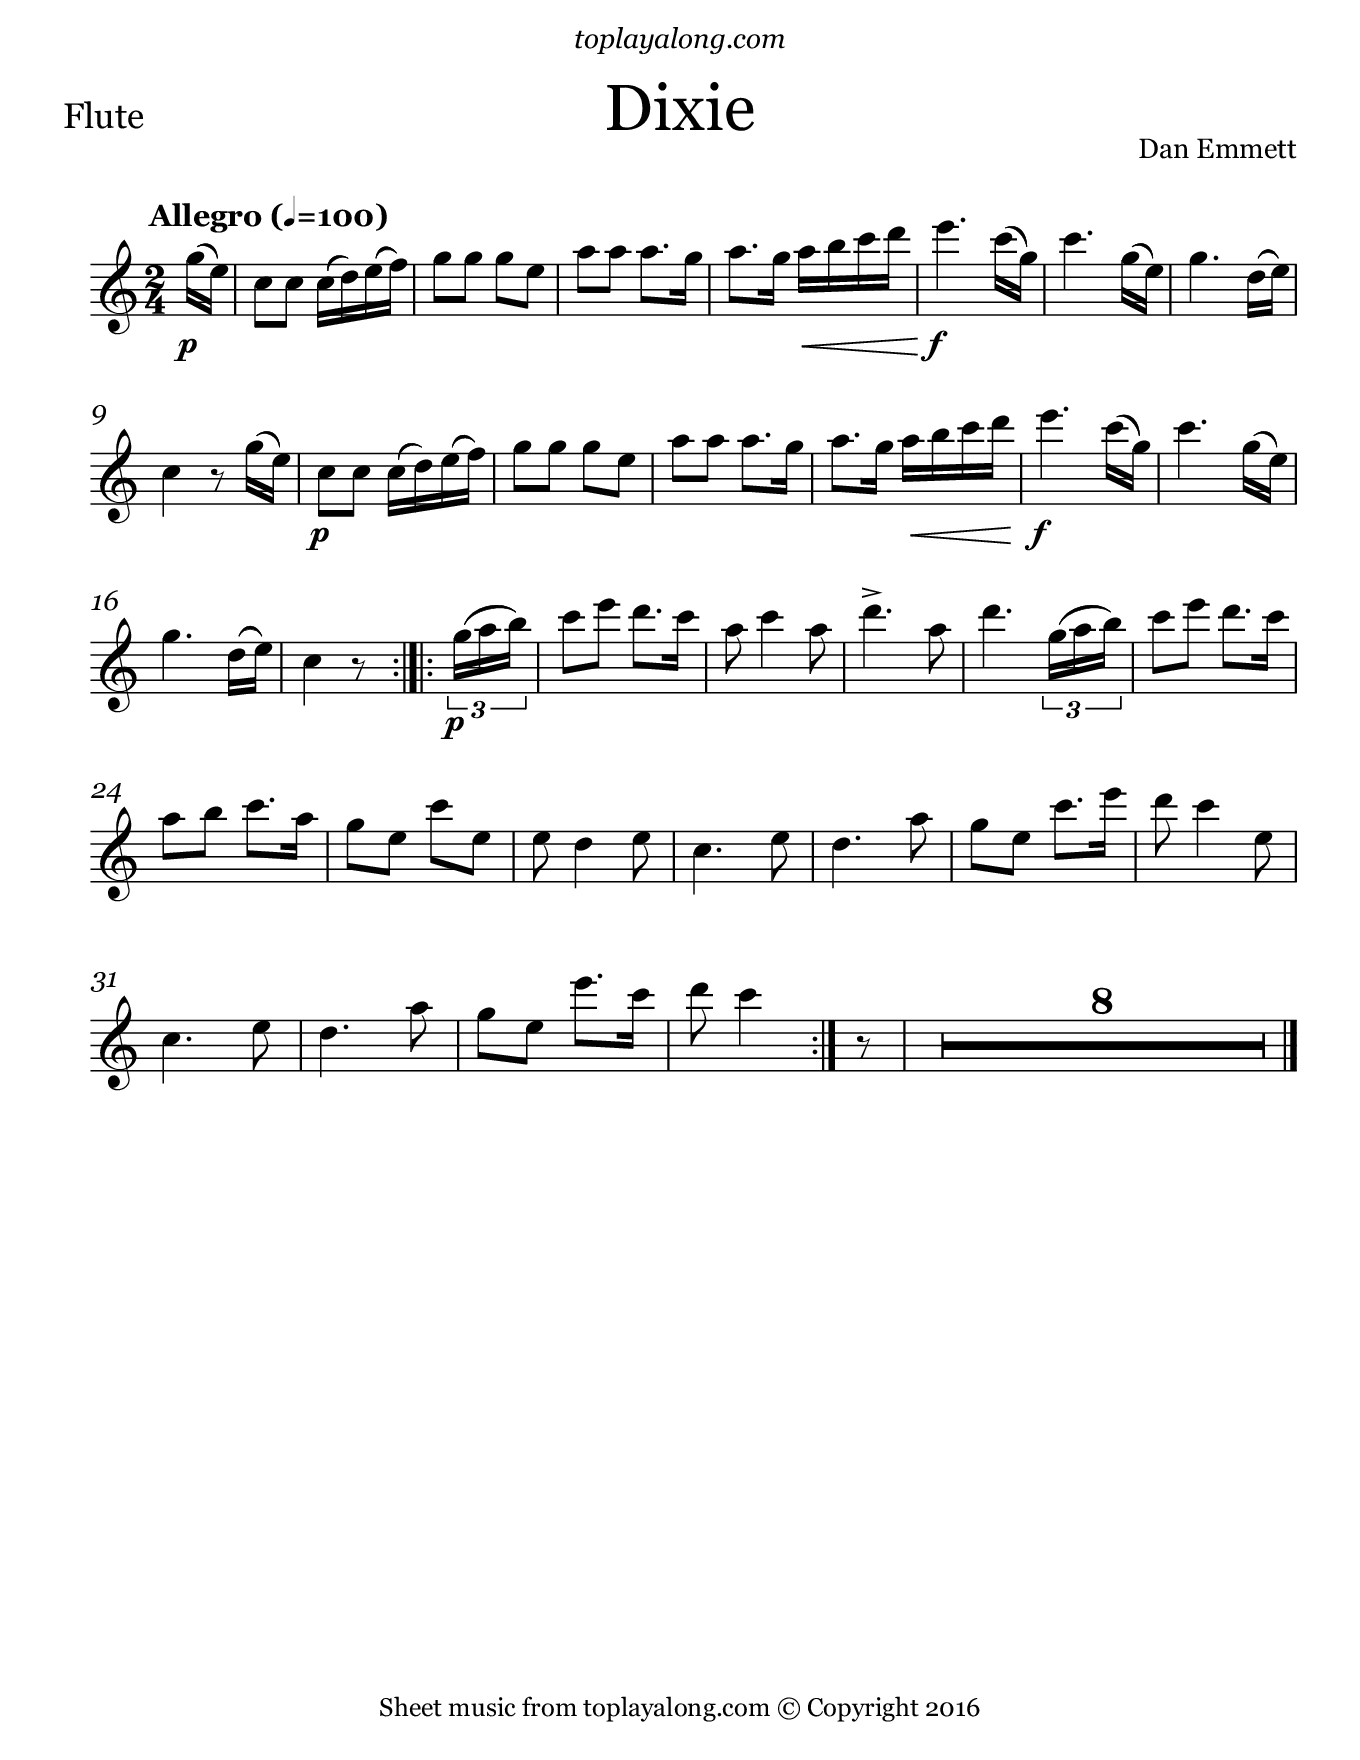 Dixie. Sheet music for Flute, page 1.